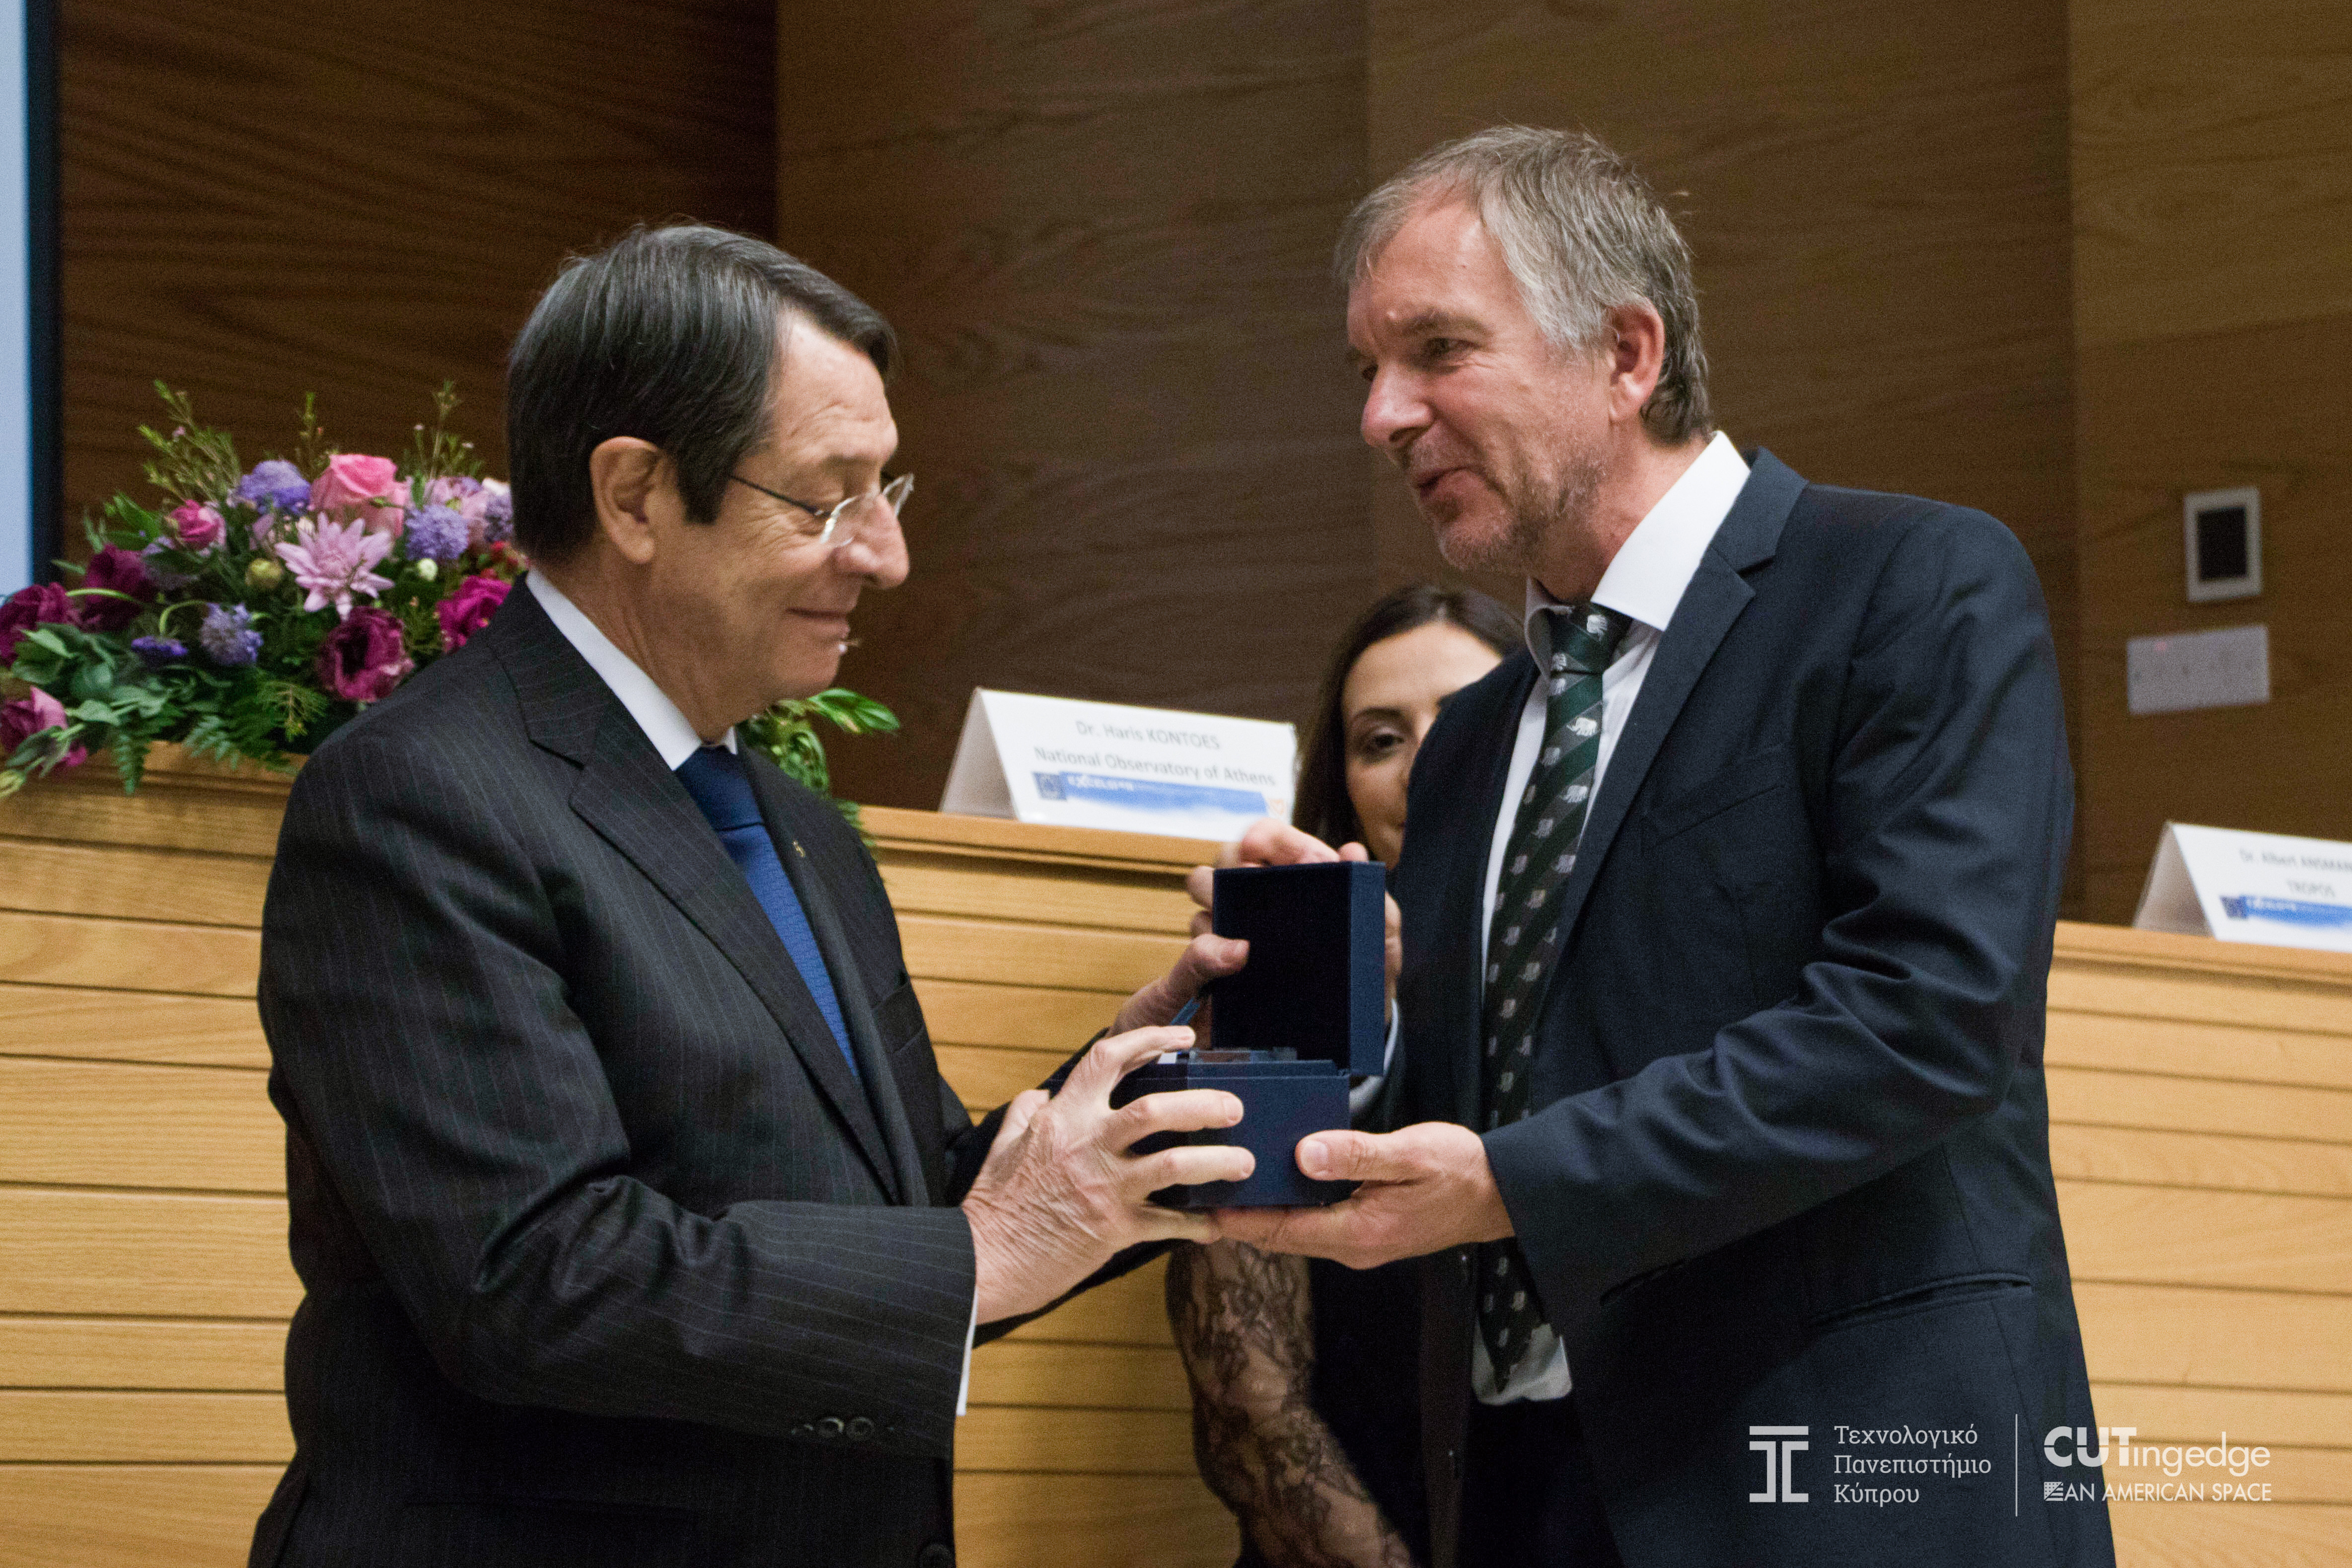 On the occasion of the opening ceremony of the EXCELSIOR project, the Cypriot President Anastasiades receives a present from DLR as a guest gift from Gunter Schreier, Deputy Director of DFD and Head of DLR's share in the project.